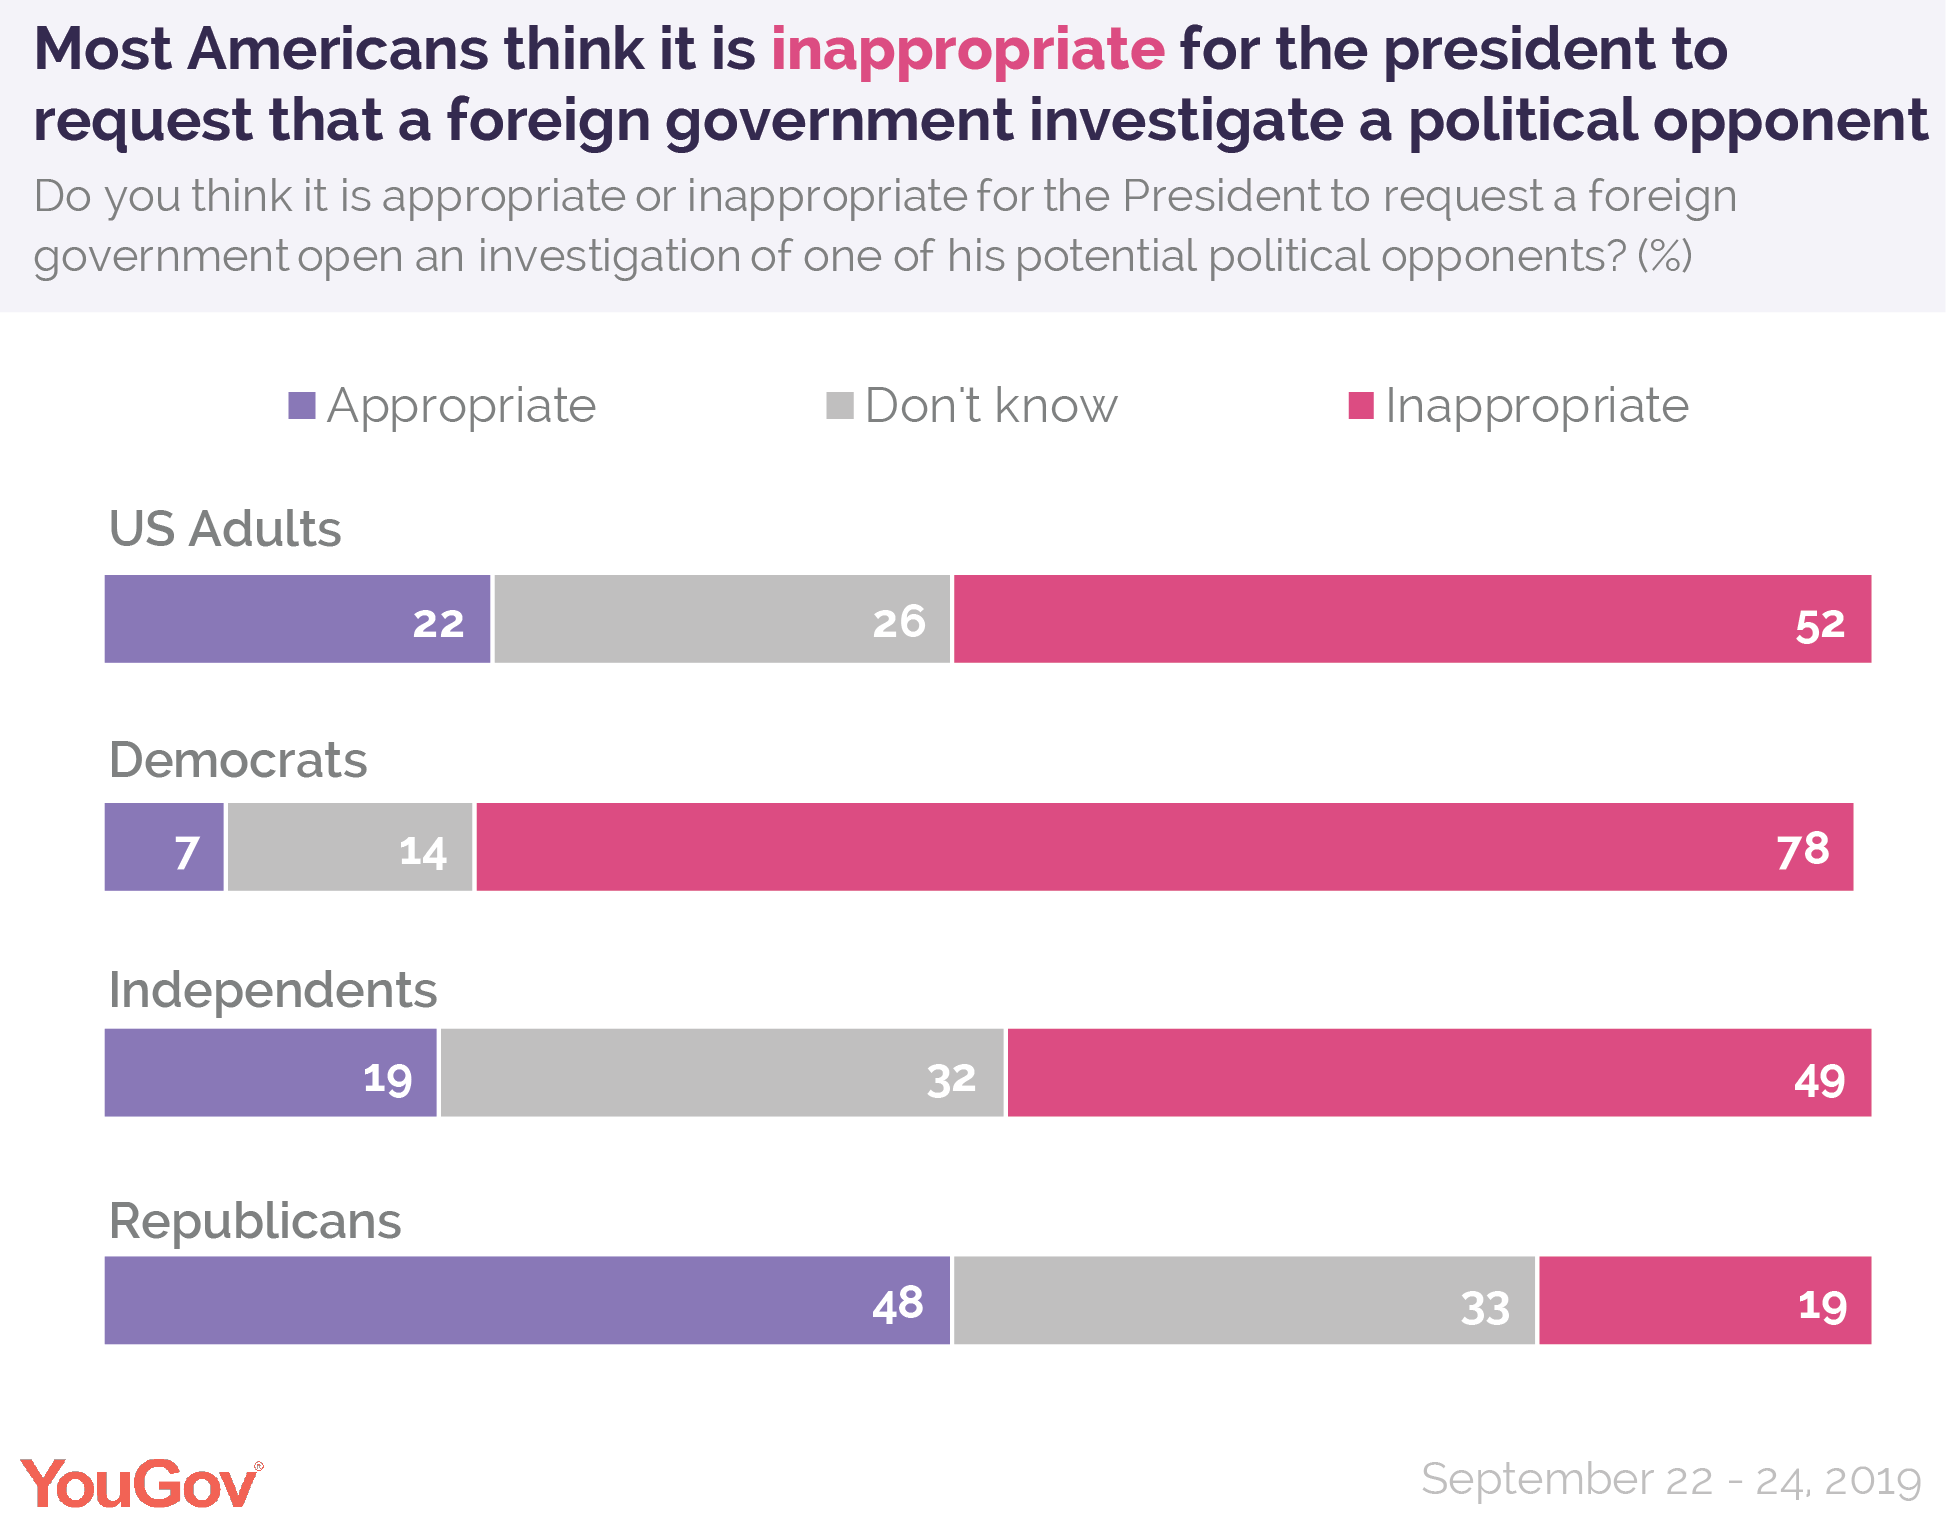 Most Americans think it is inappropriate for the President to request that a foreign government investigate a political opponent